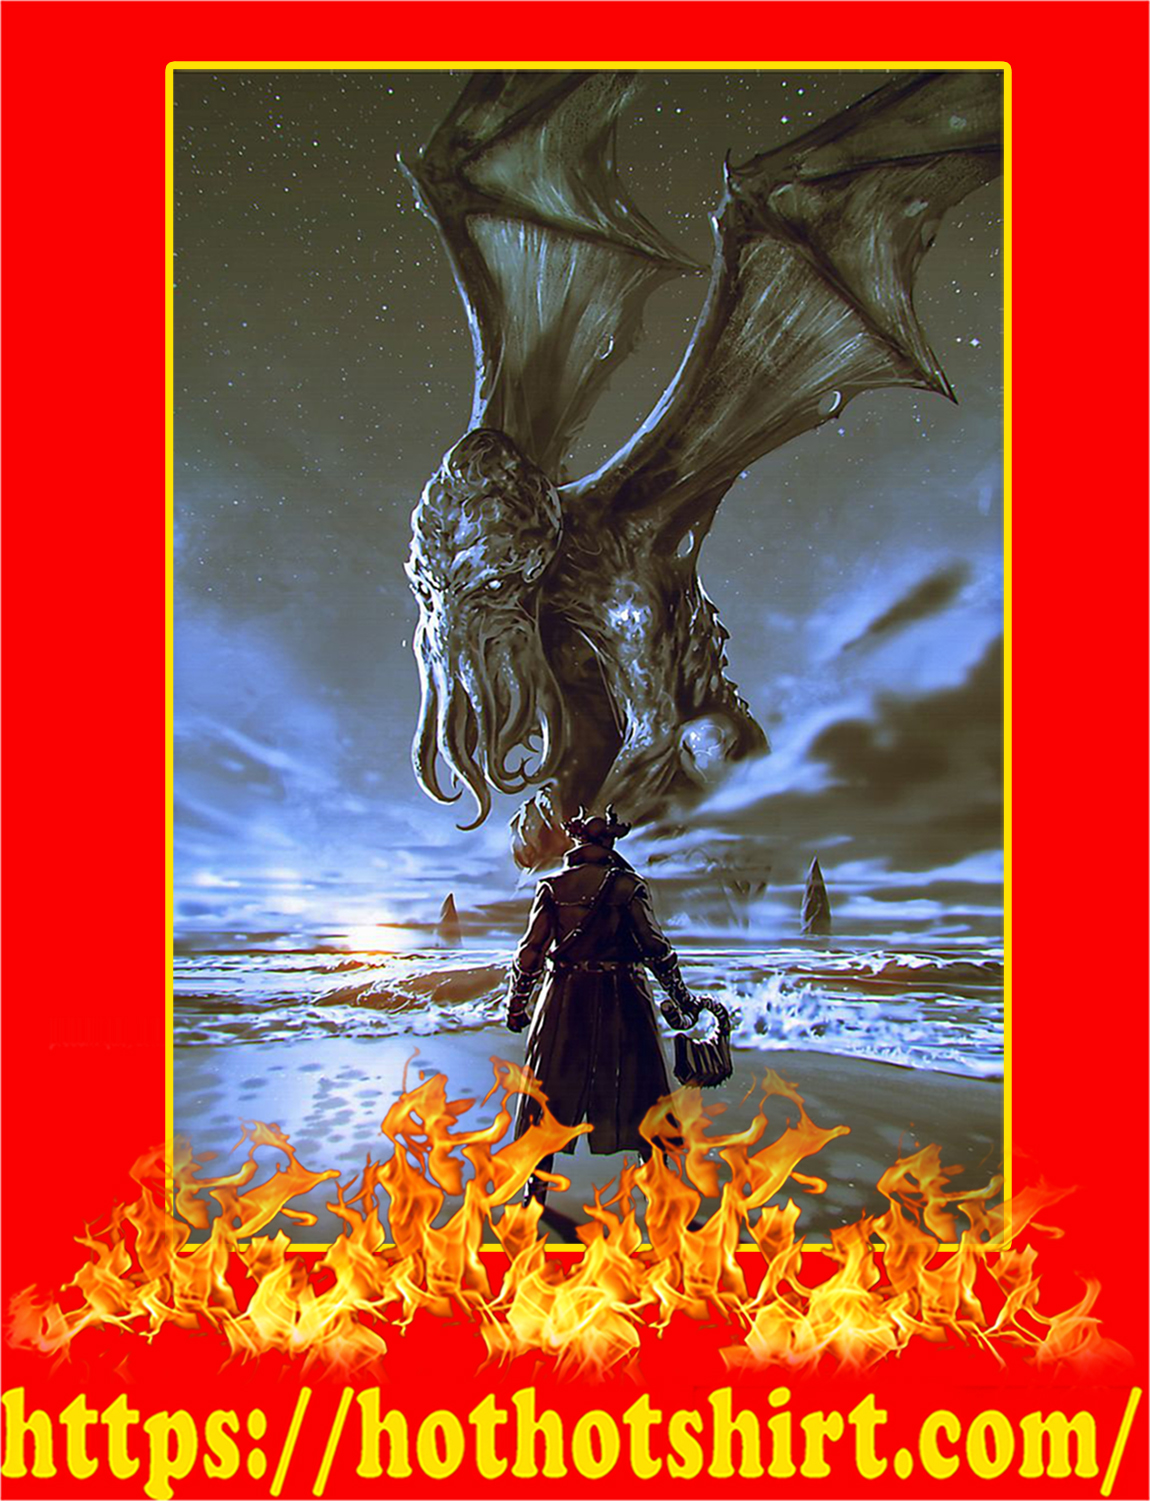 The Call of Cthulhu Poster - A2